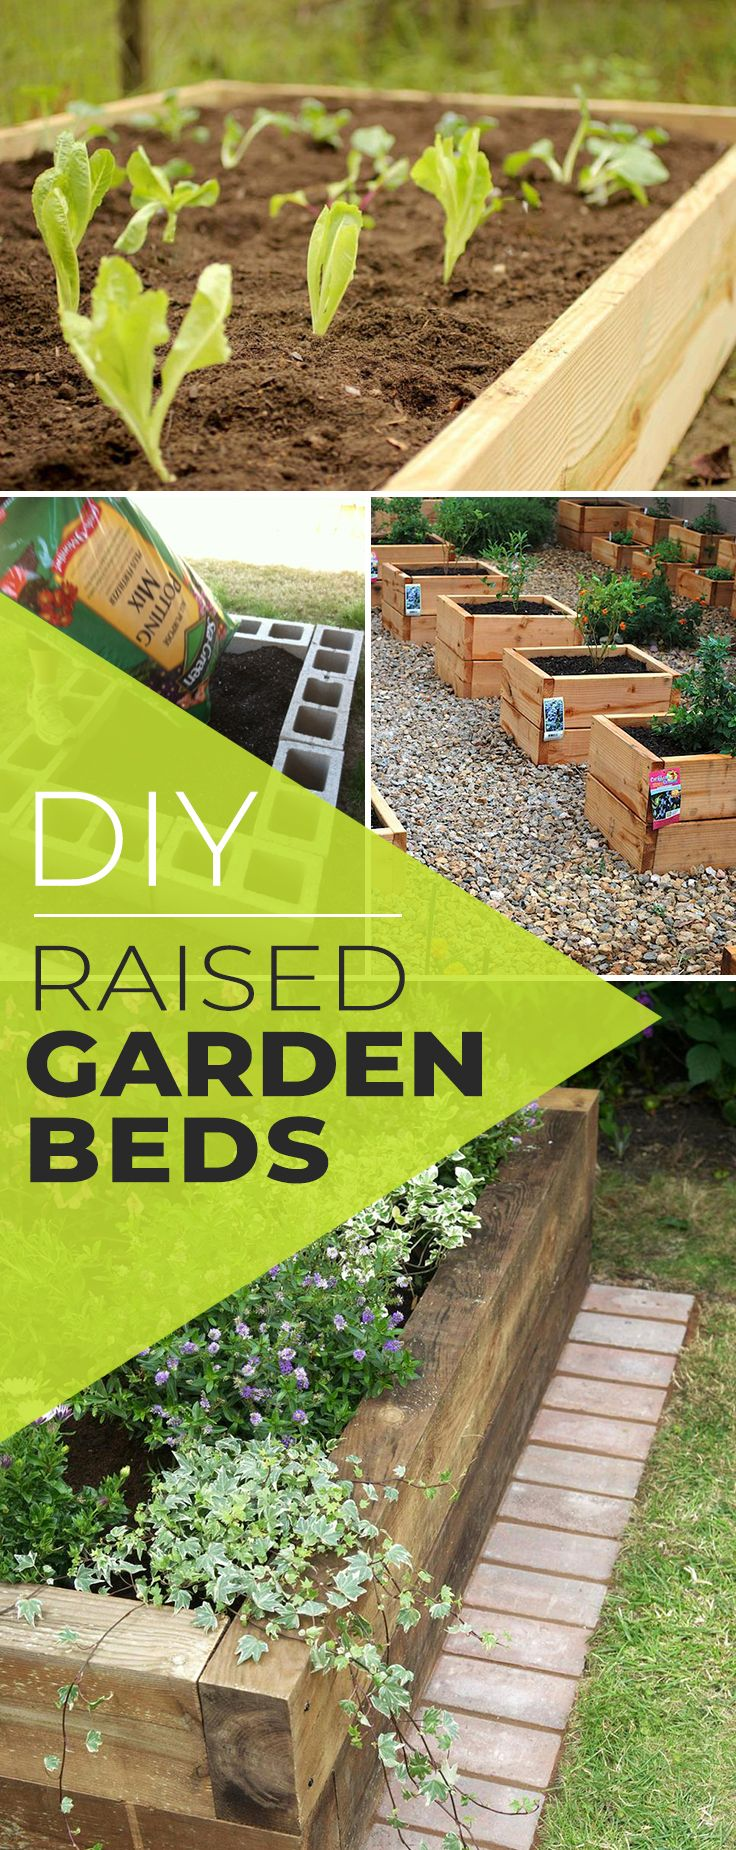 DIY Raised Garden Beds & Planter Boxes! • Check out all the tutorials and proj...